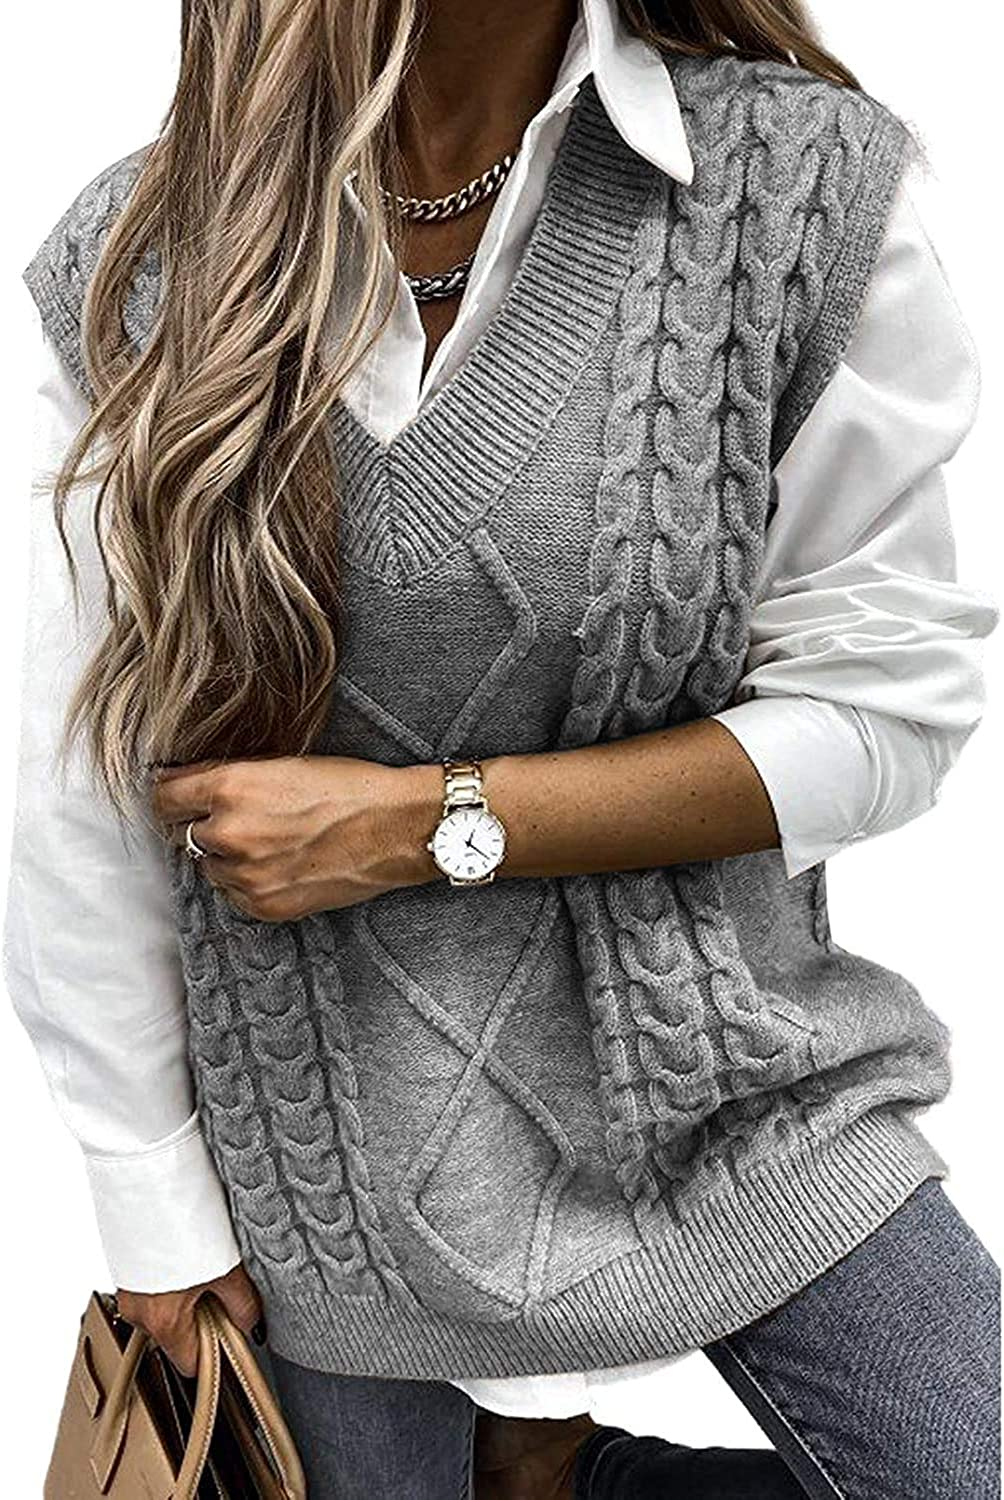 Yousify Women Cable Knit Oversize Sweater Vest V Neck Sleeveless Vintage Loose Sweaters Tops